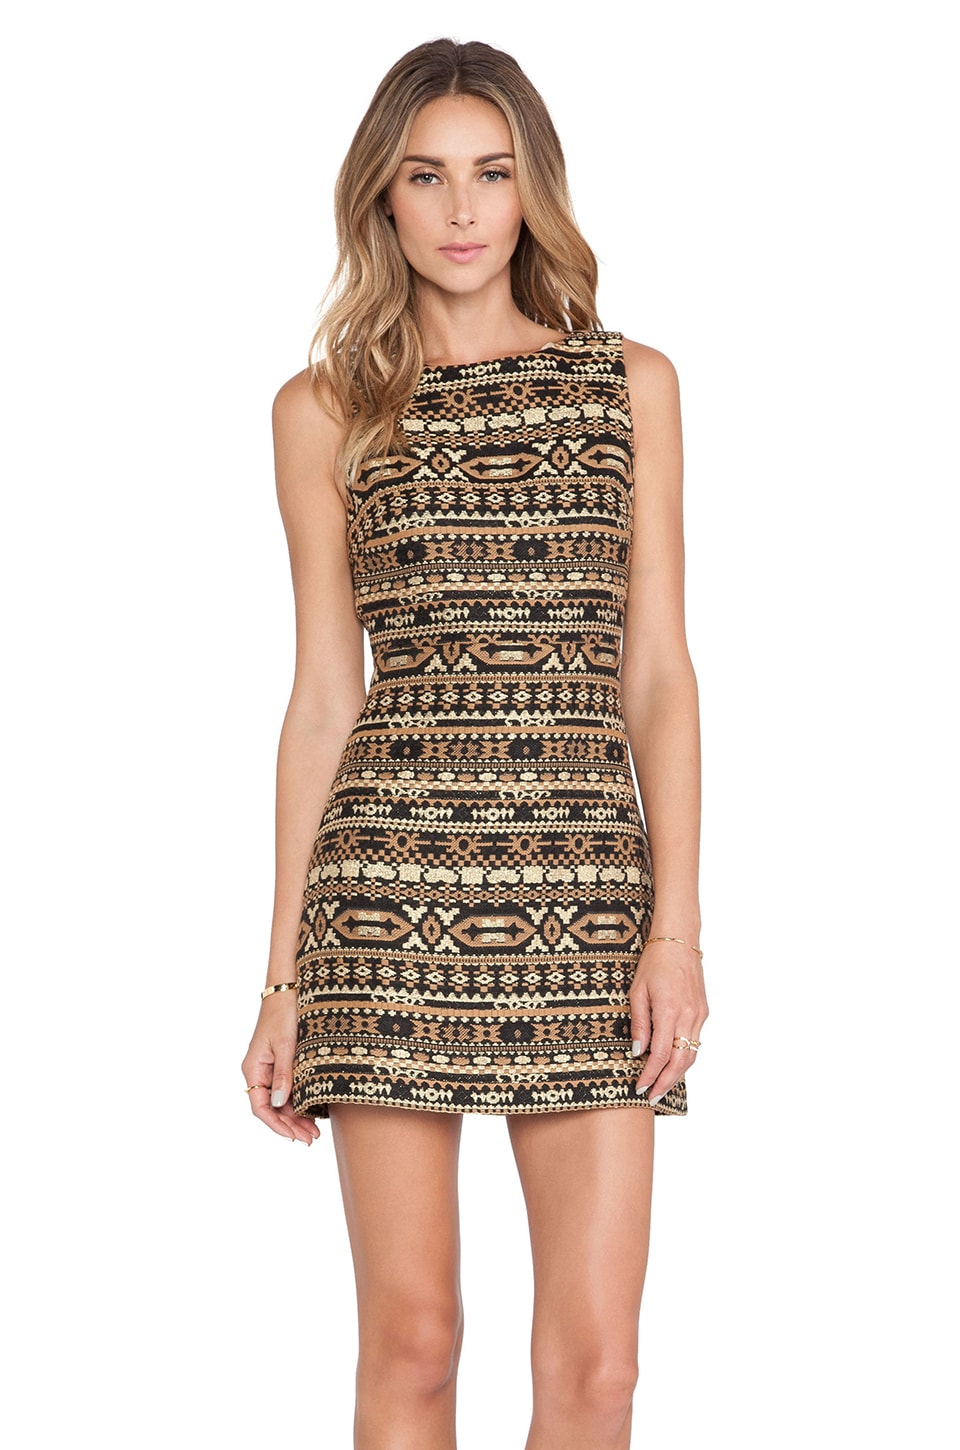 Alice + Olivia Wilcox Shift Dress in Black & Gold